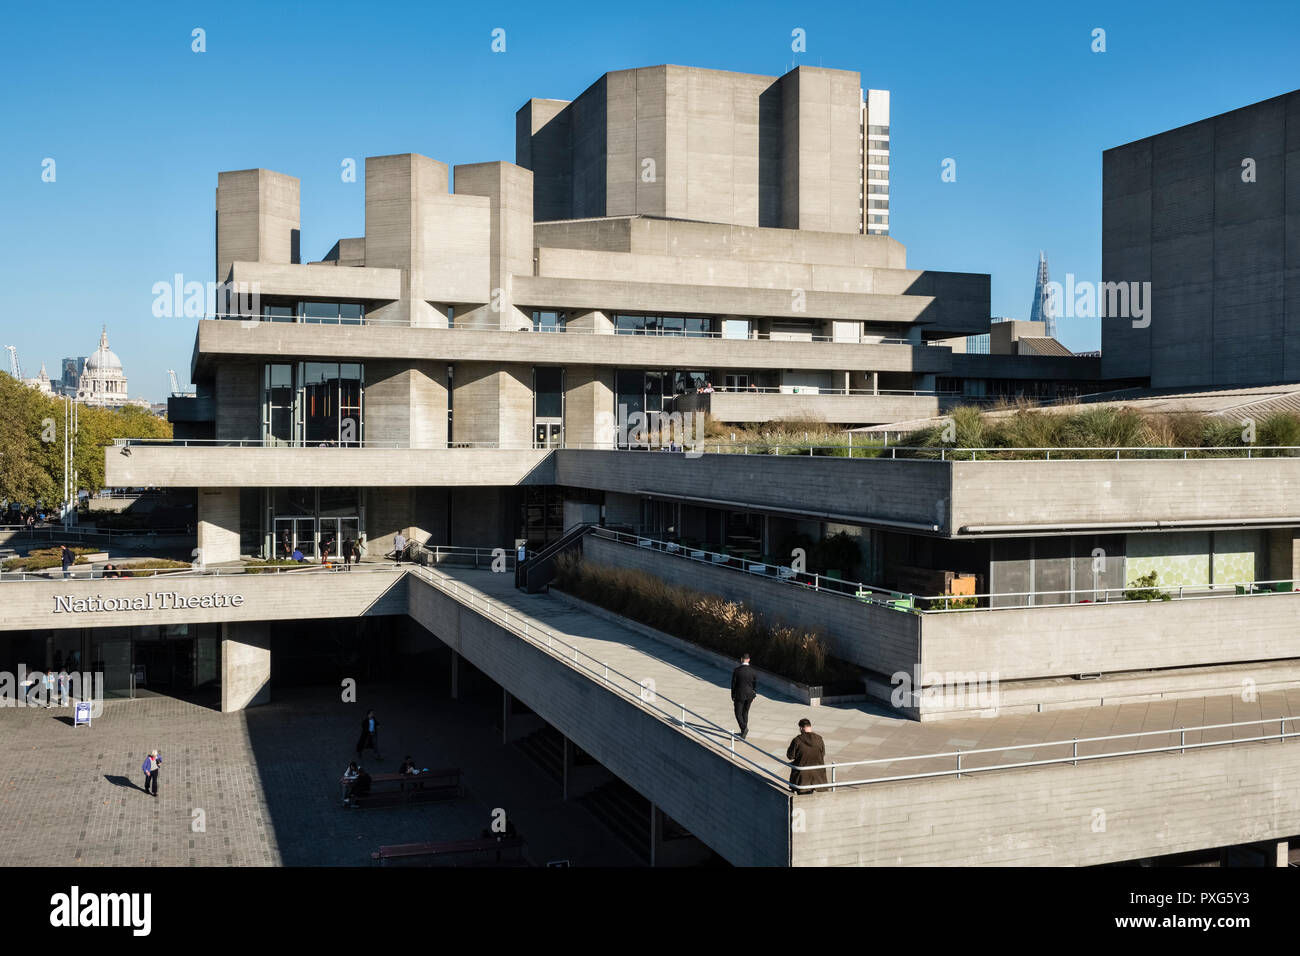 London, UK. The National Theatre, by the architect Denys Lasdun, opened in 1977 on the south bank of the River Thames beside Waterloo Bridge - Stock Image